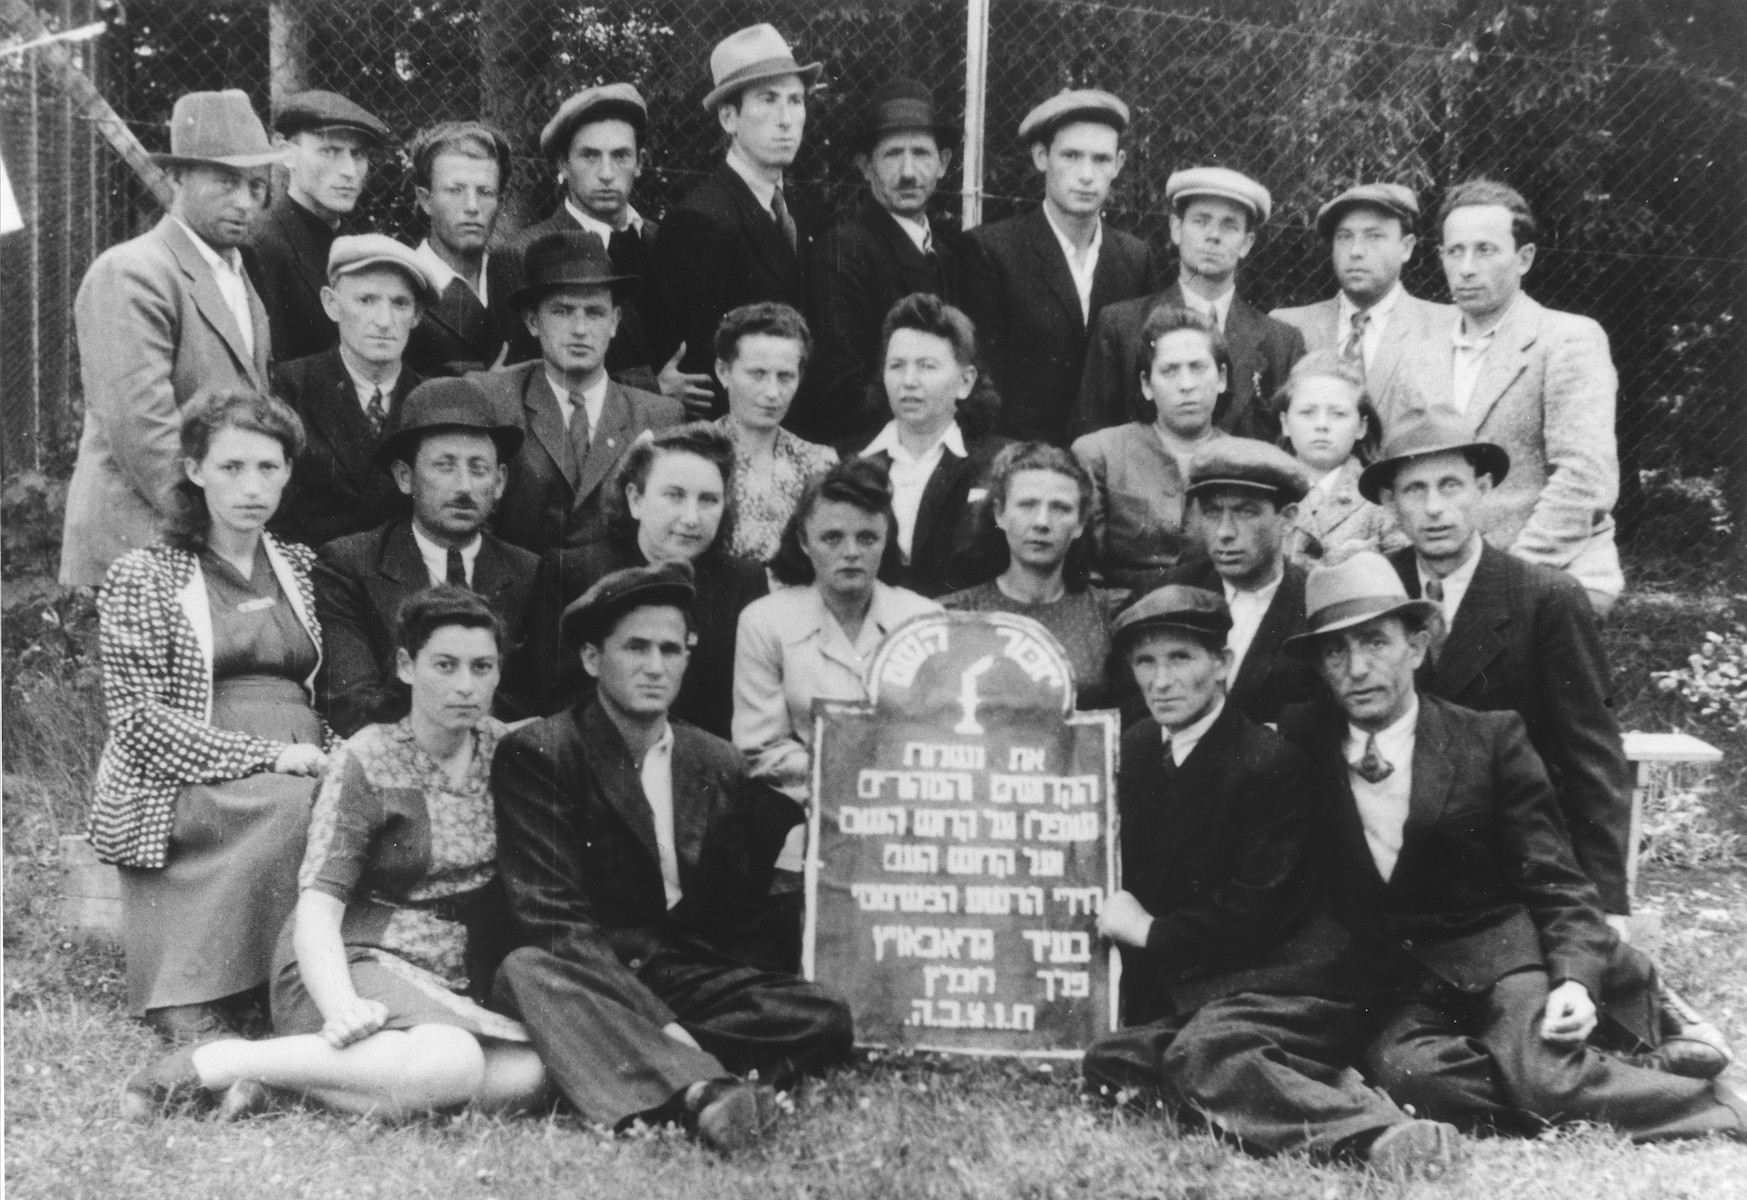 Group portrait of Jewish survivors from Grabowiec with a plaque commemorating those who were killed by the Nazis.  Among those pictured is Chaja Rajs (seated in the center in a dark suit and white blouse).